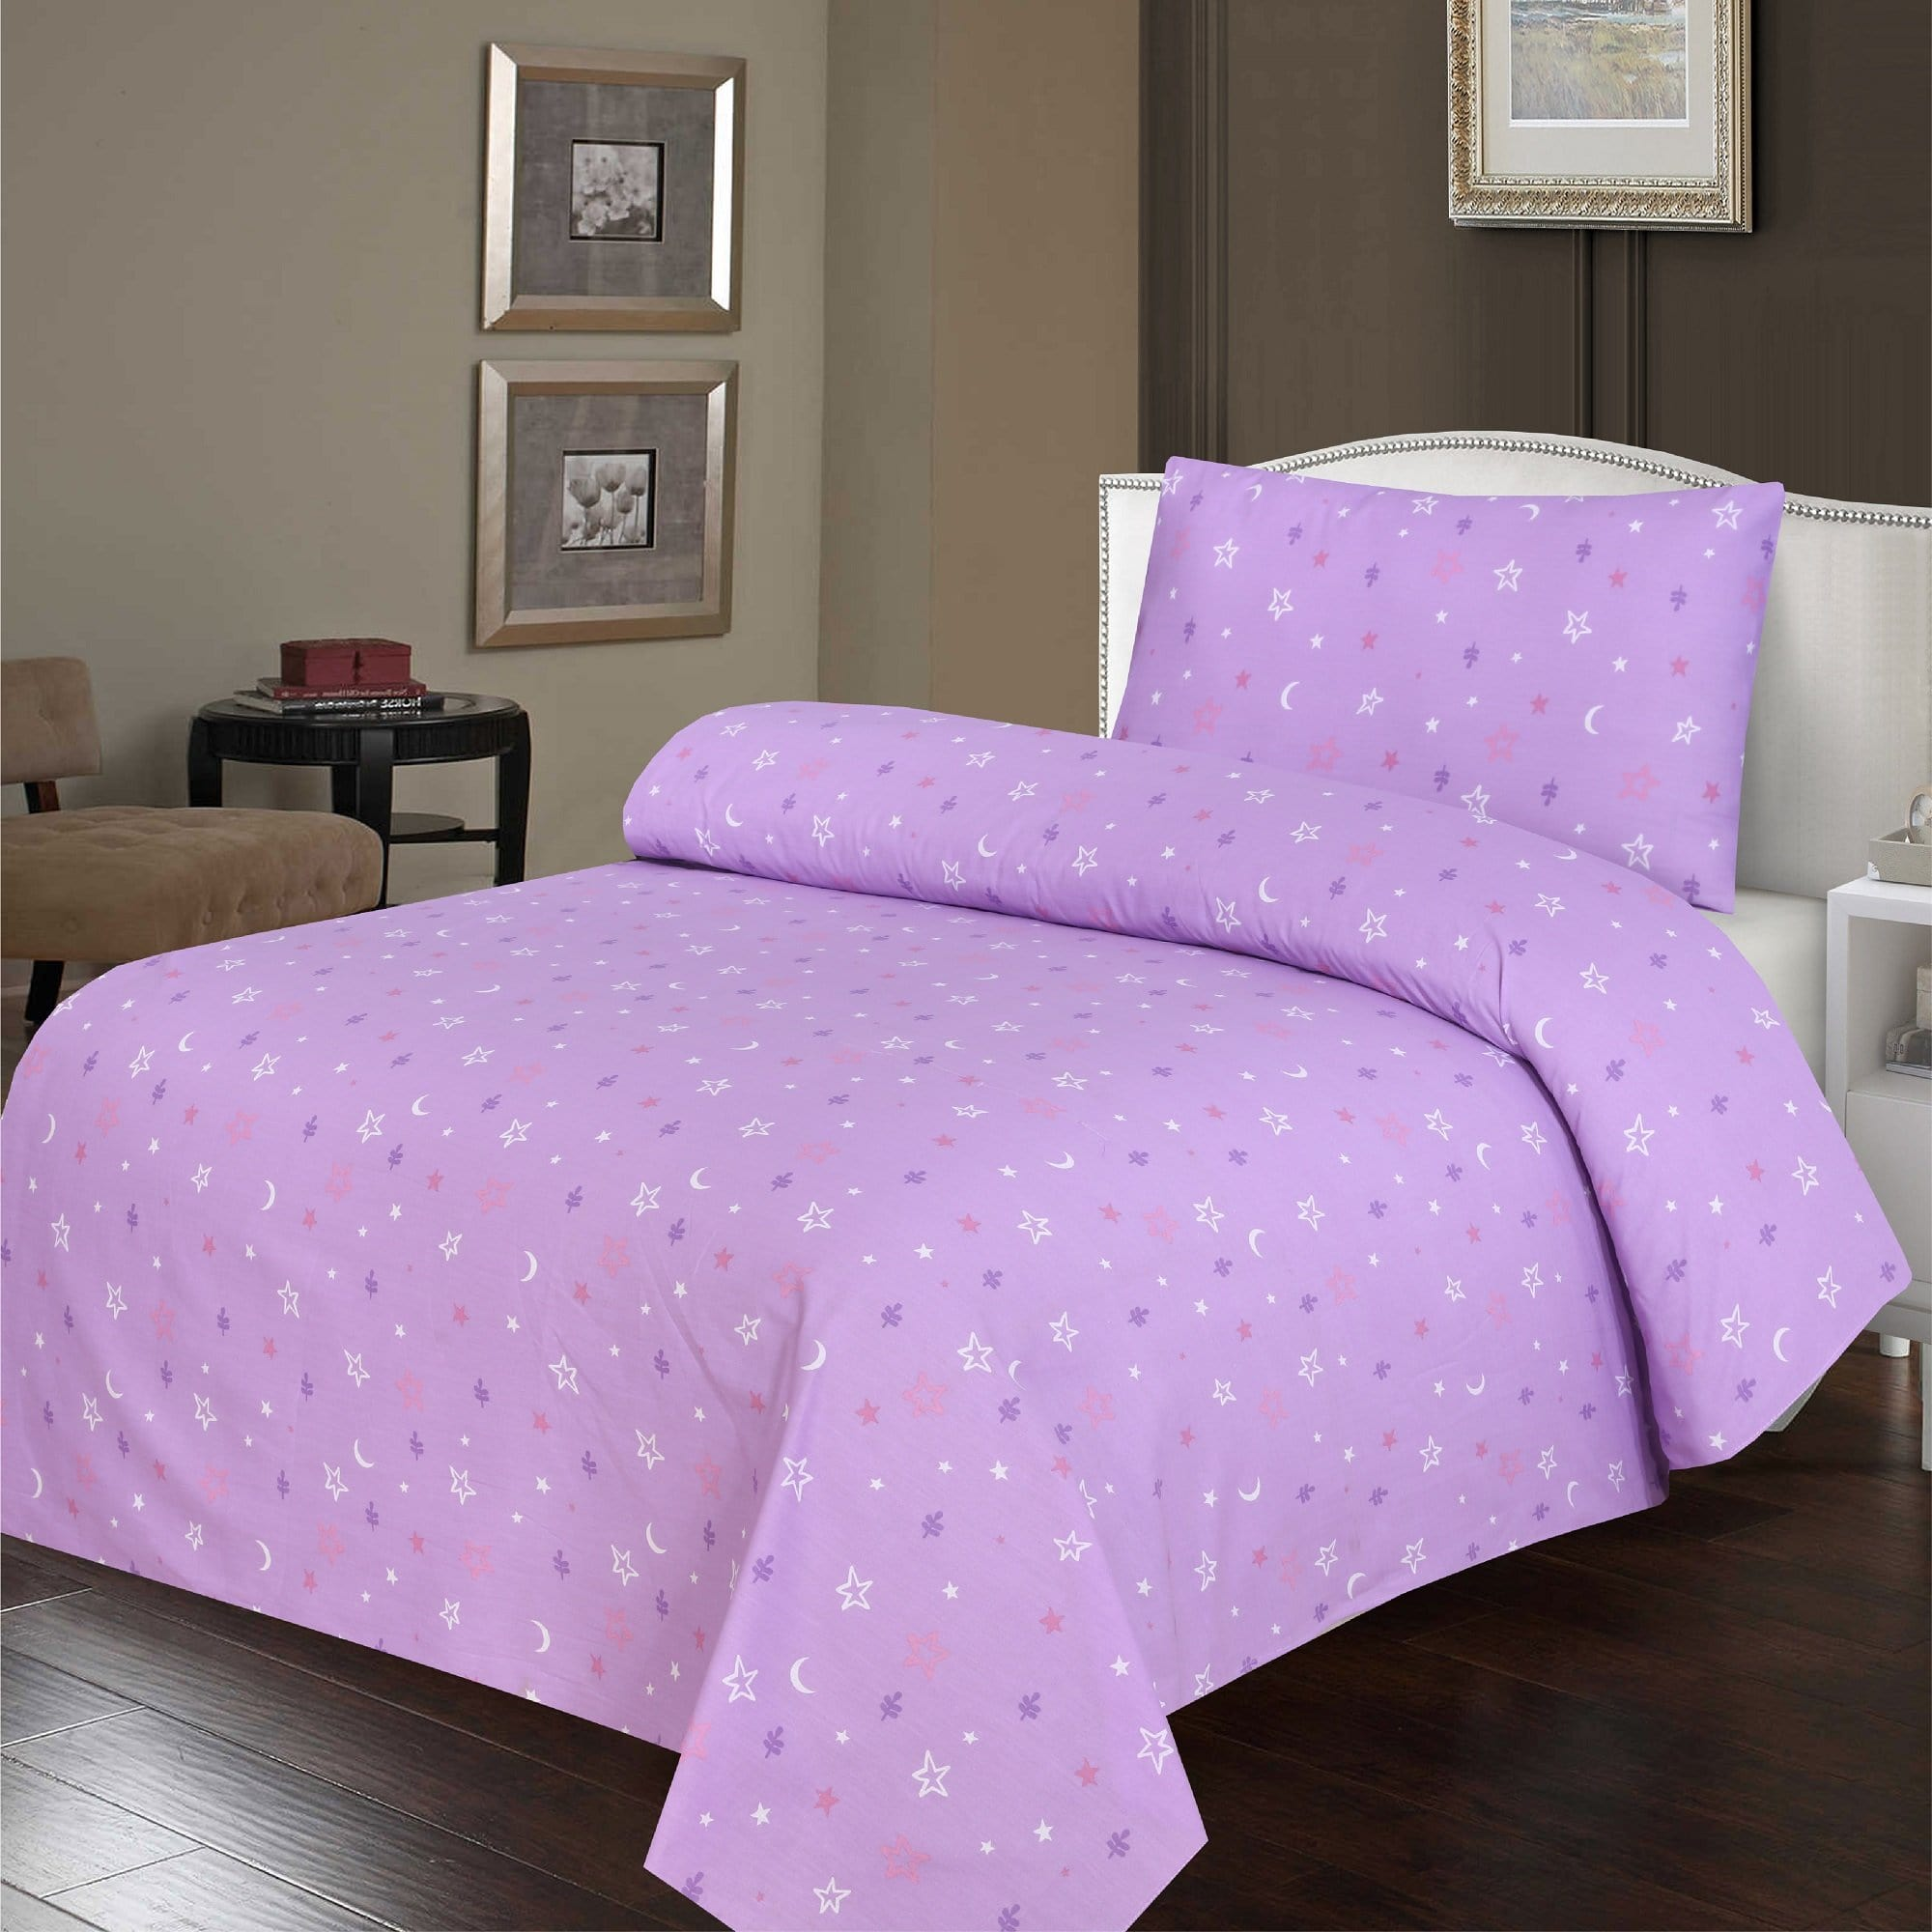 Grace D390-Cotton PC Single Size Bedsheet with 1 Pillow Cover.